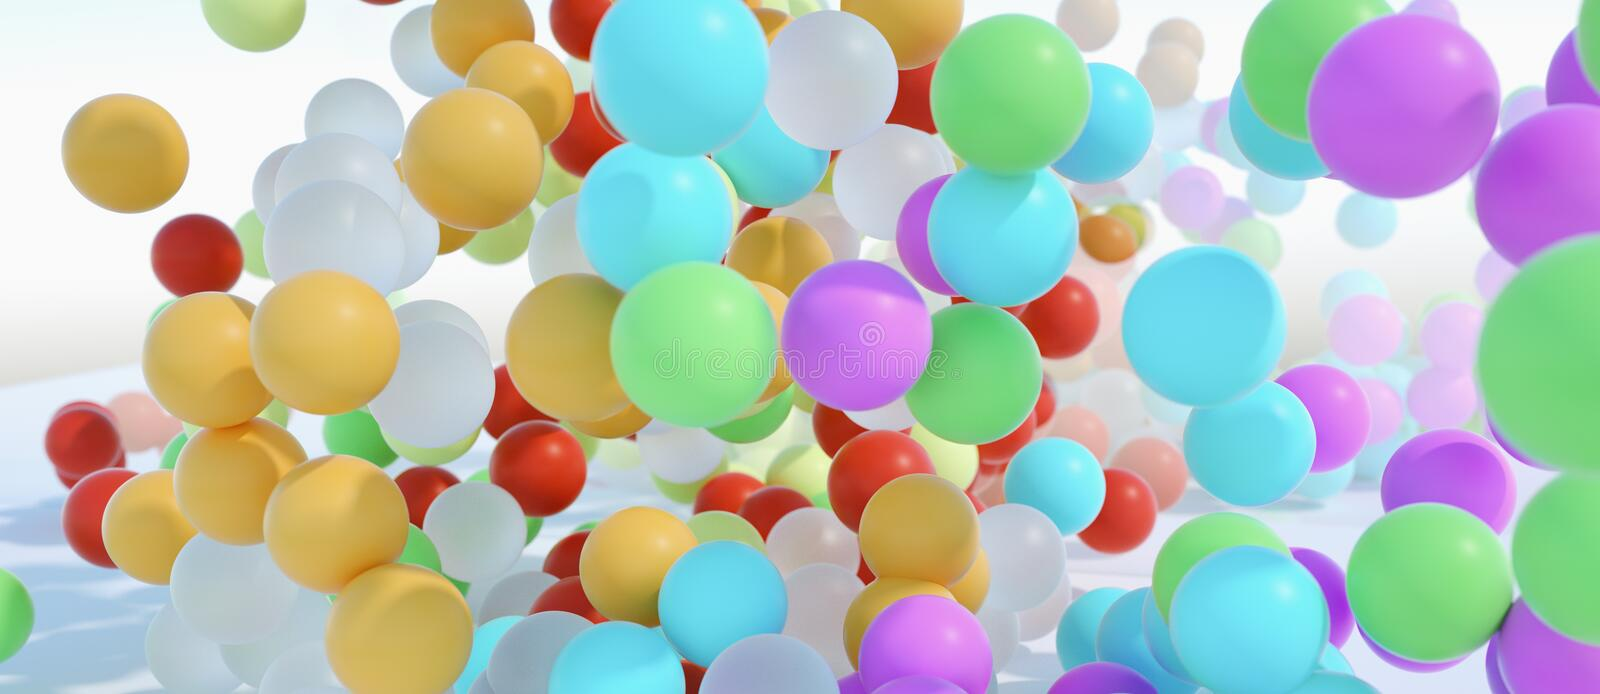 Colorful bouncing balls outdoors against blue sunny sky royalty free stock image